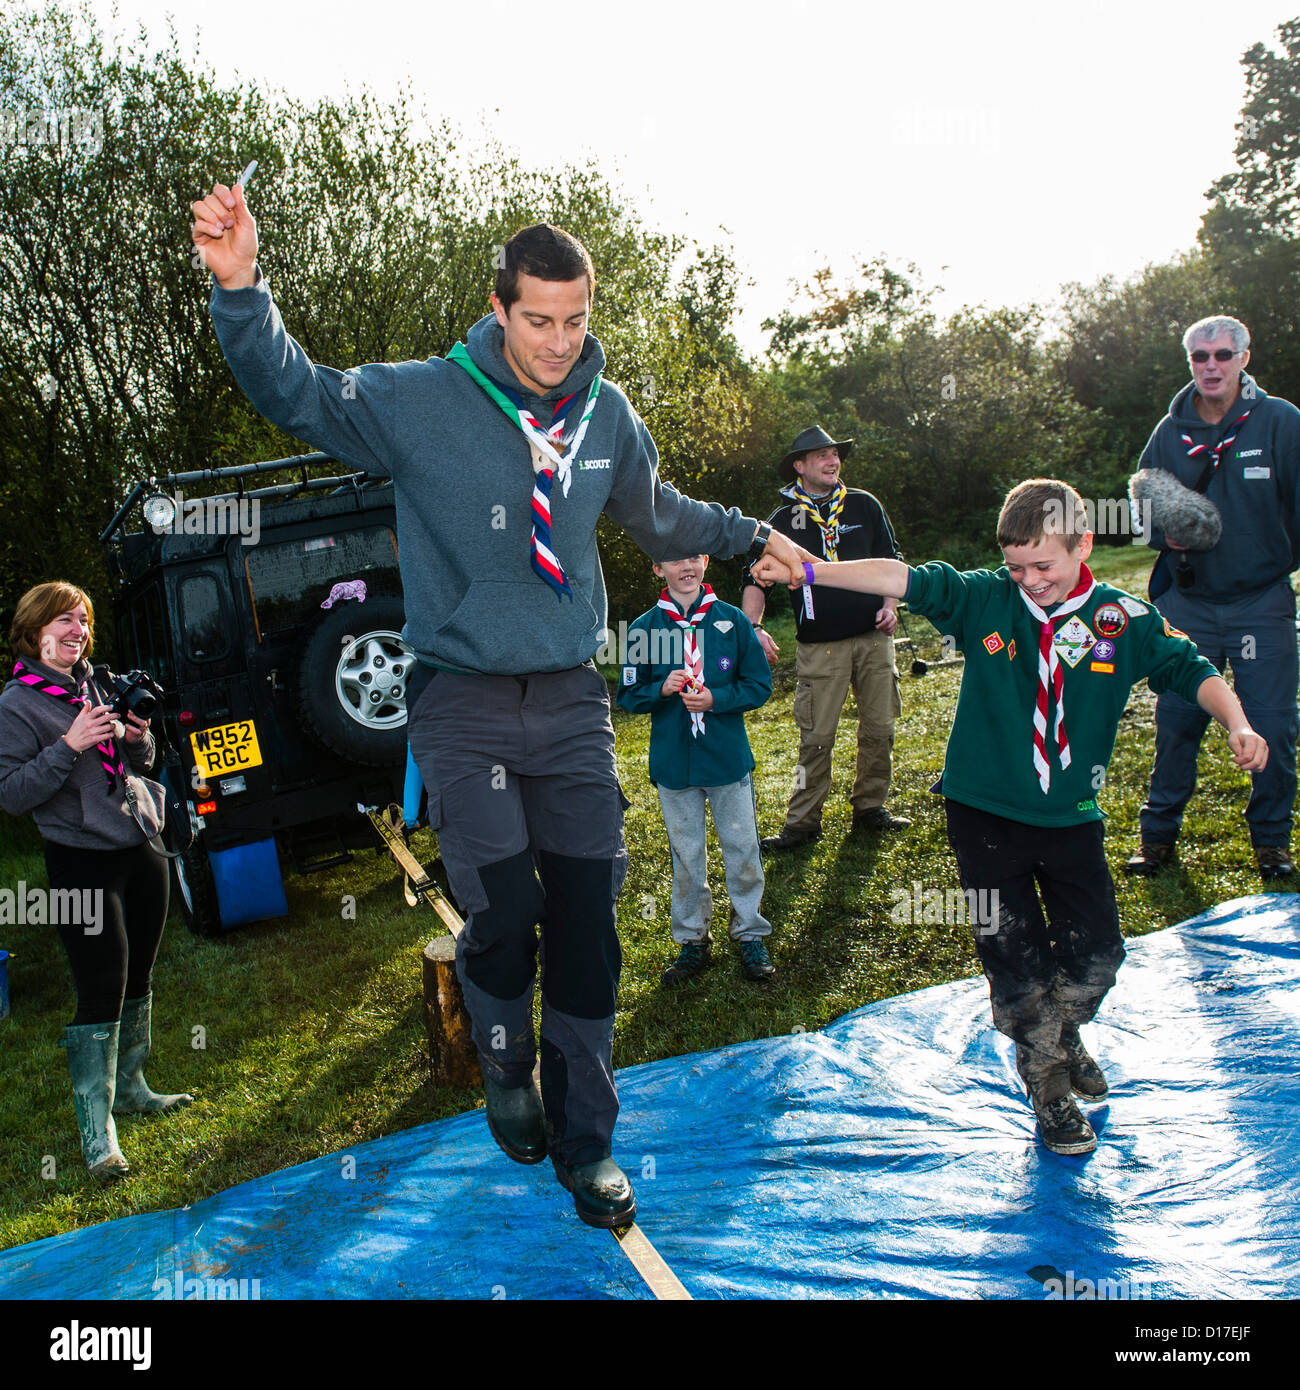 Boy Scouts Uk Stock Photos &- Boy Scouts Uk Stock Images - Page 4 ...